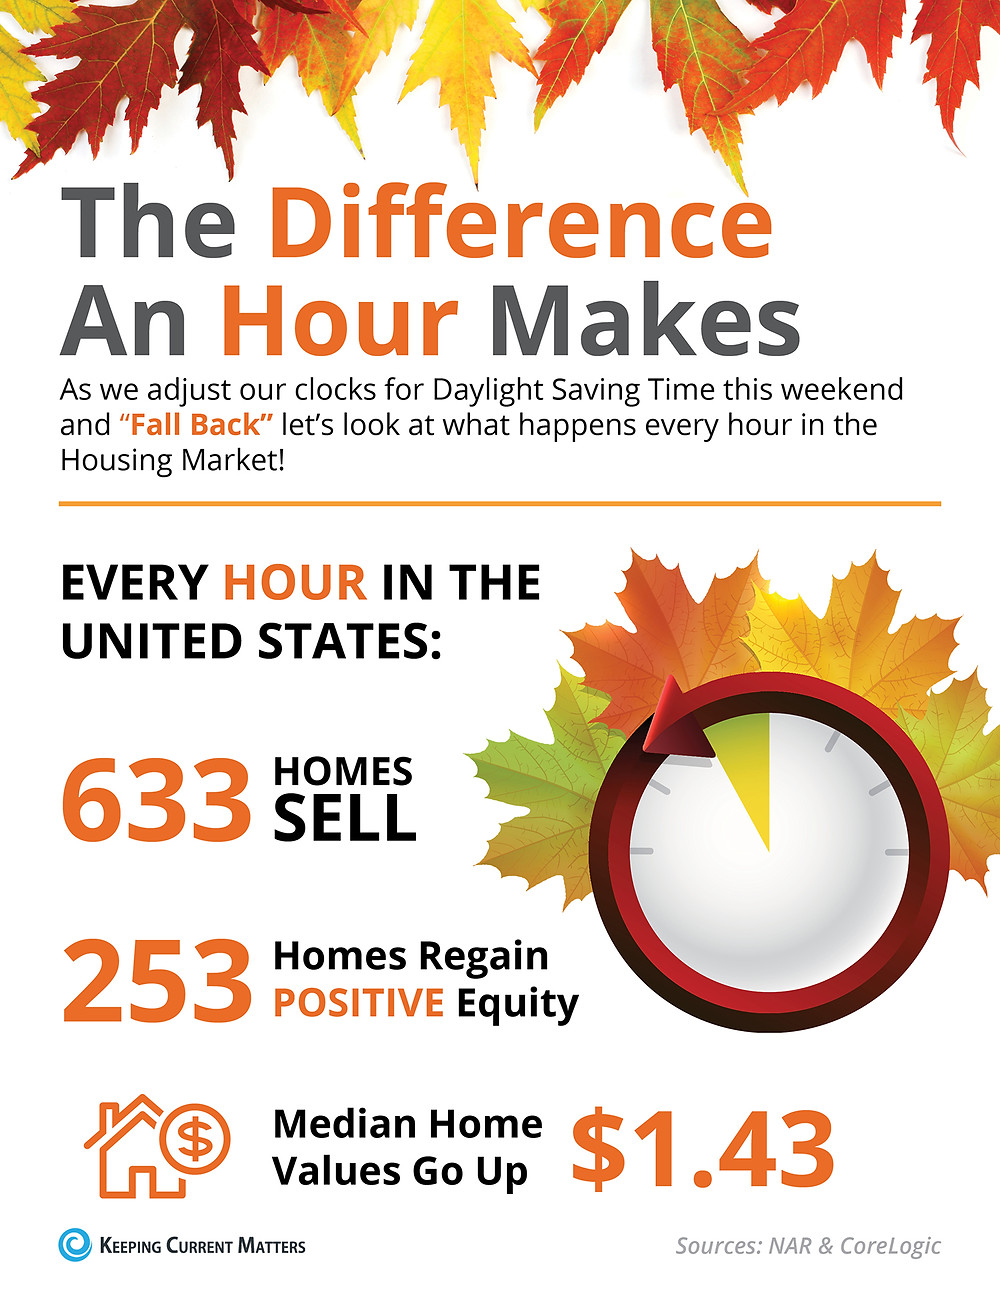 The Difference an Hour Makes This Fall [INFOGRAPHIC] | Keeping Current Matters